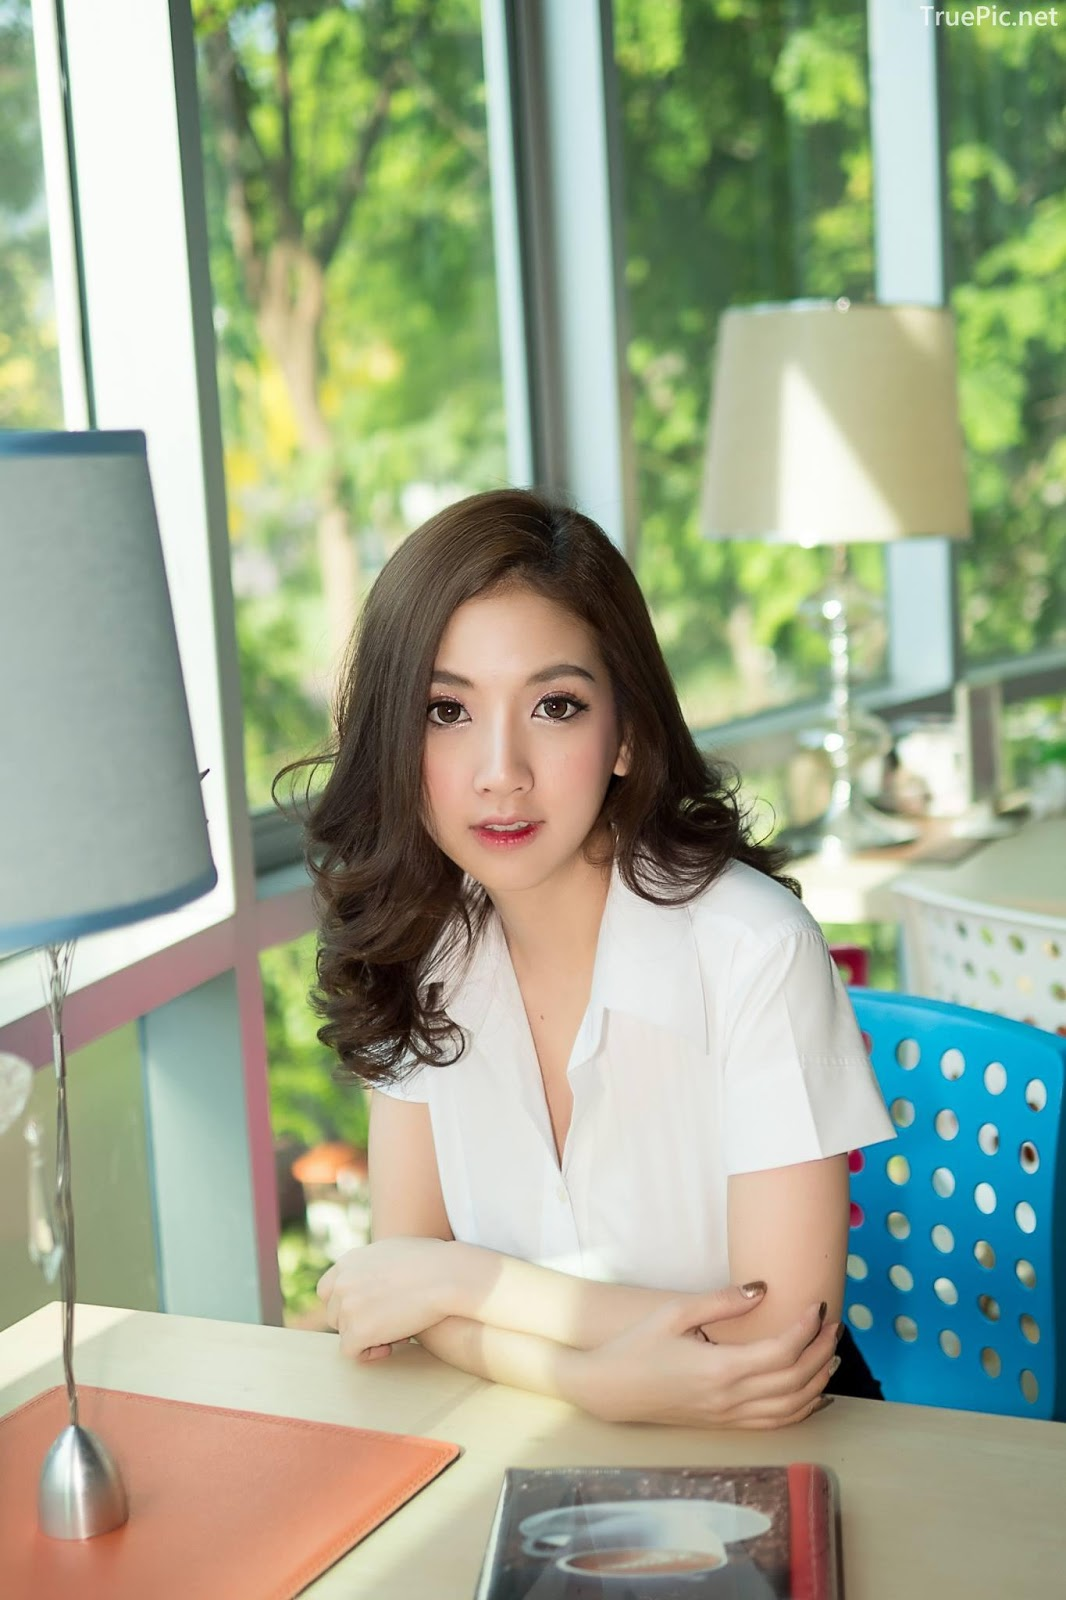 Thailand model - Yingaon Duangporn - Concept The Beautiful Office Girl - Picture 8